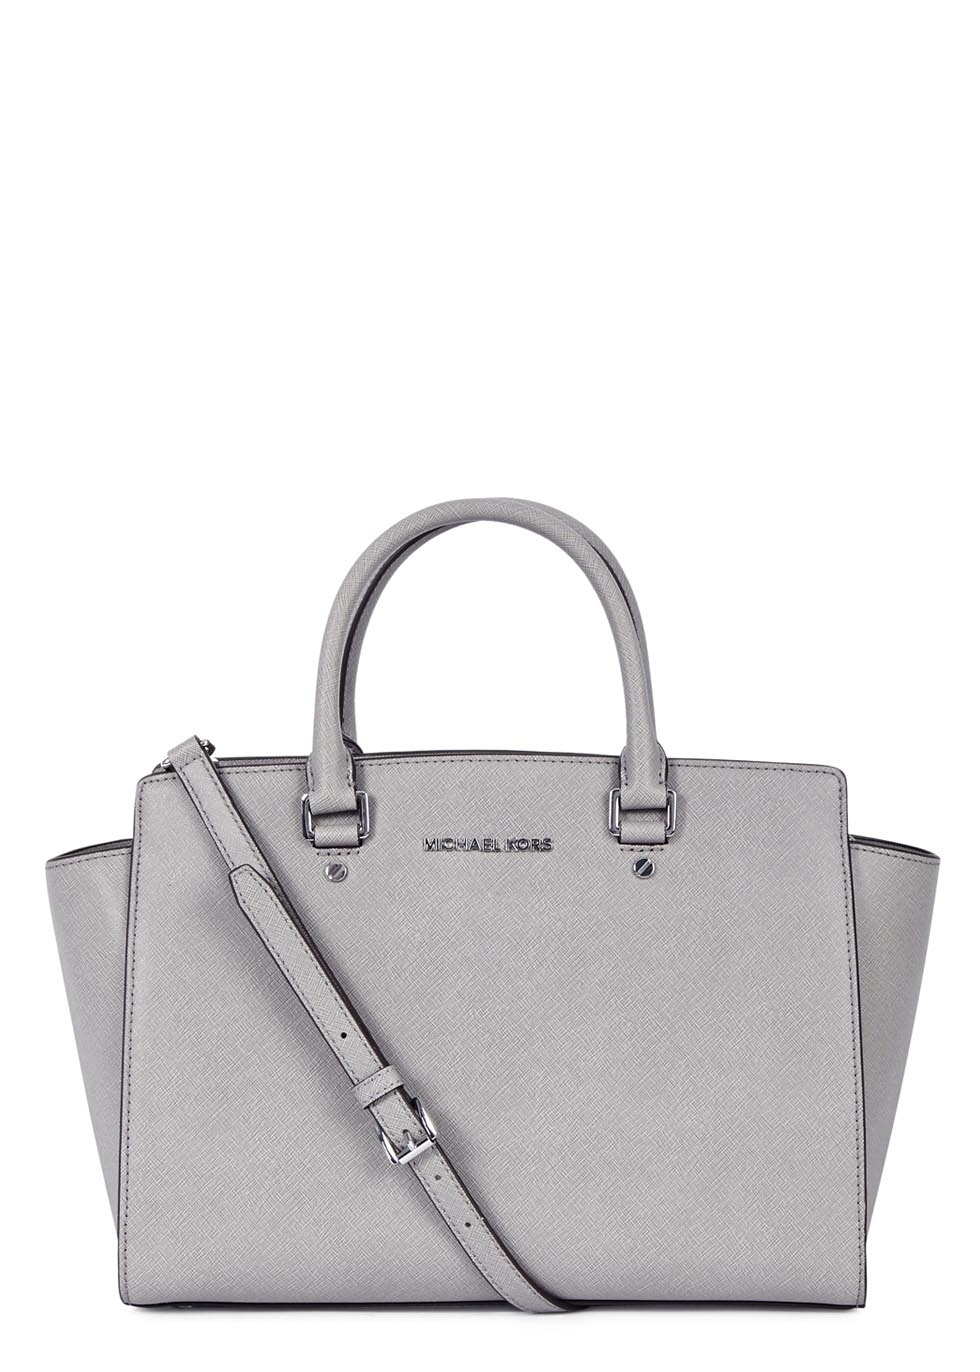 8d0061106990 Michael Kors Selma Large Grey Saffiano Leather Tote in Gray - Lyst